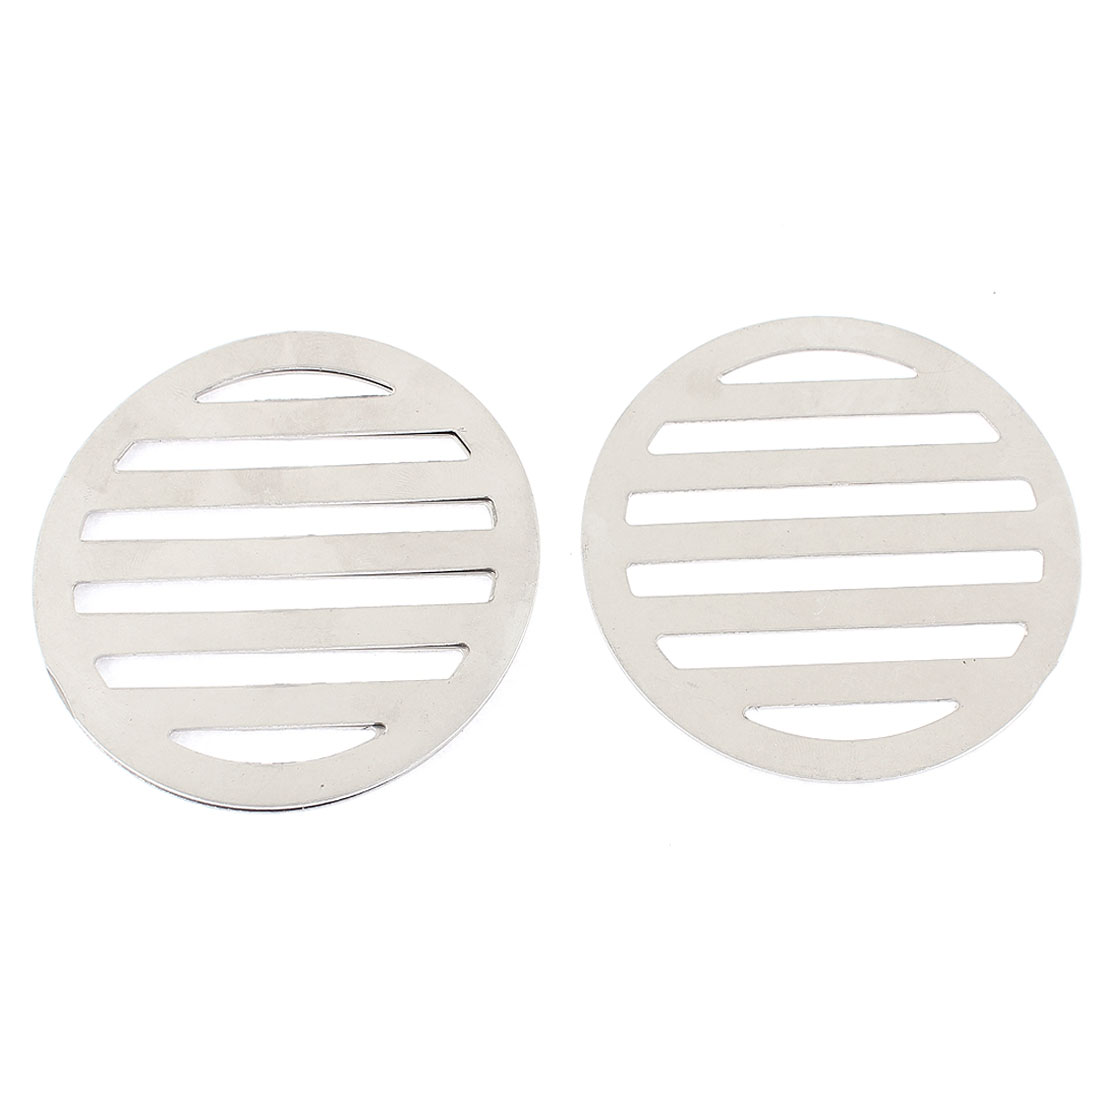 "Stainless Steel Kitchen Bathroom Round Floor Drain Cover 3.4"" 8.6cm 3Pcs"